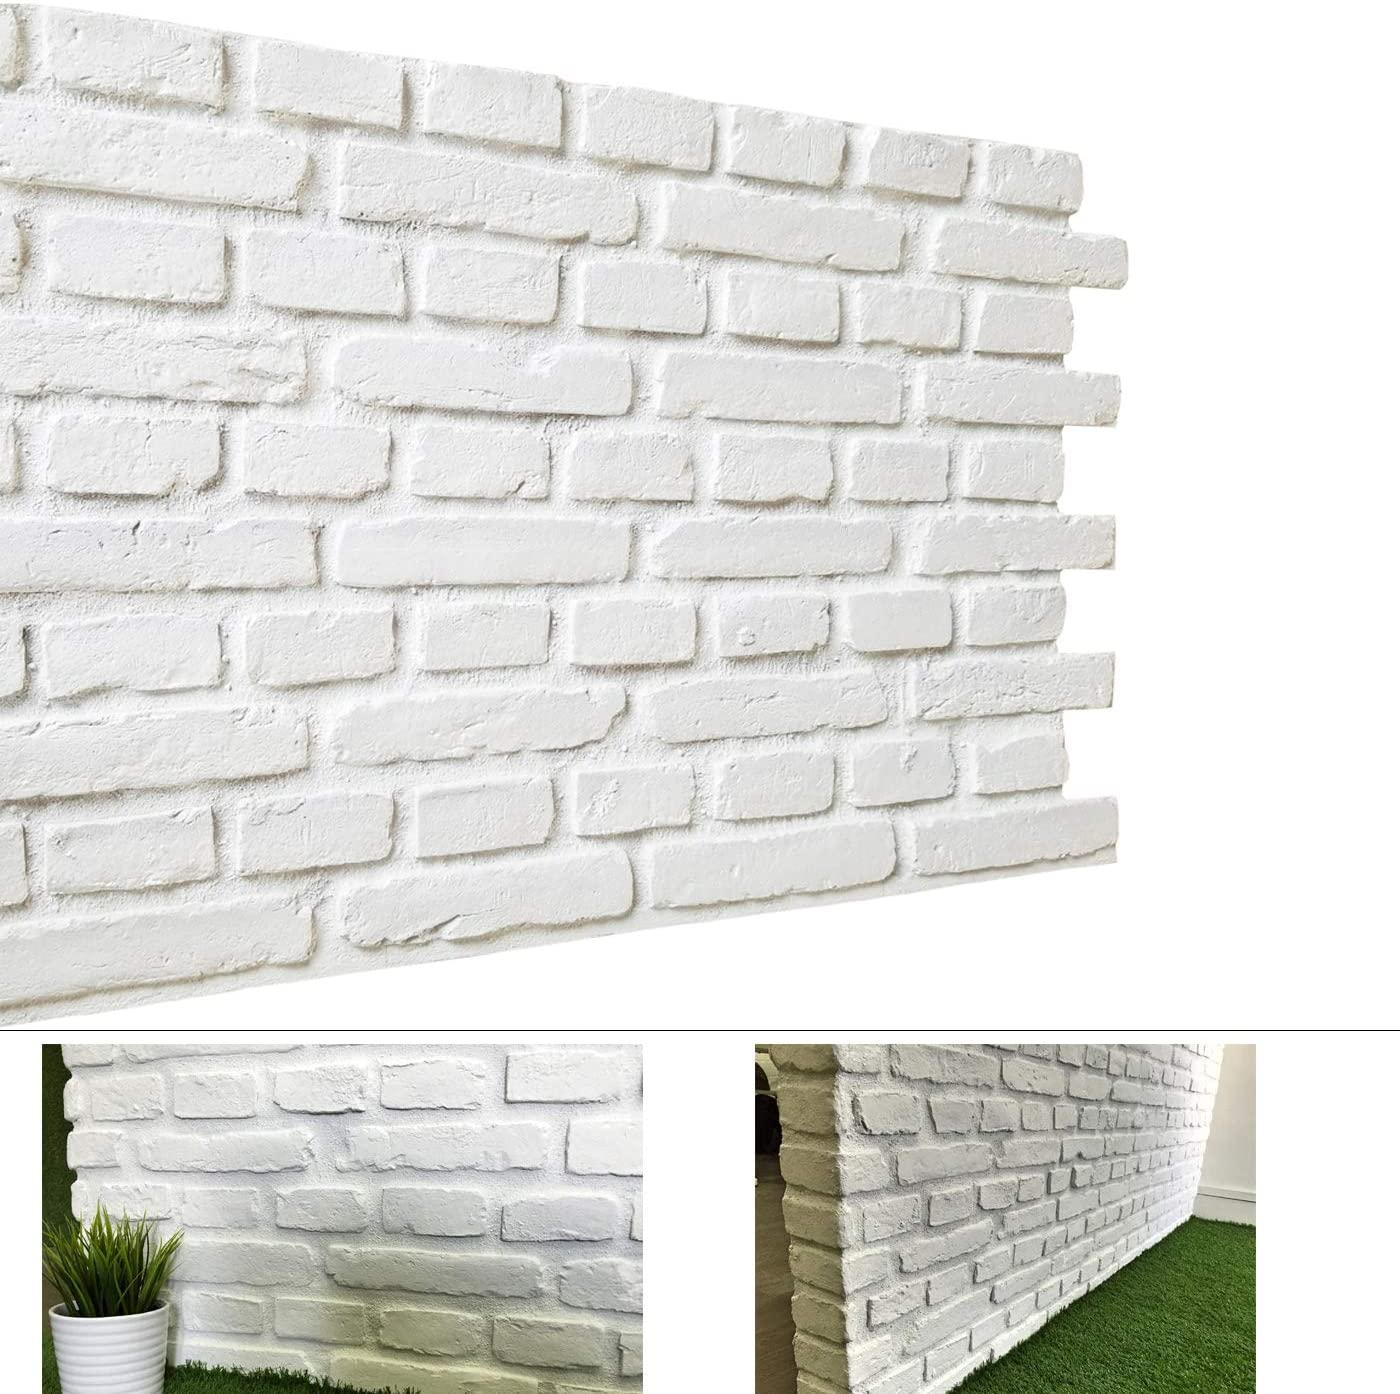 Faux Brick Wall Panels Diy Wall Decoration With Rustic Design Faux Rust Tuscan 3d Brick Wall Panels For Tv Background Wall Exterior Wall 32 Square Feet Box Matt White Home Improvement